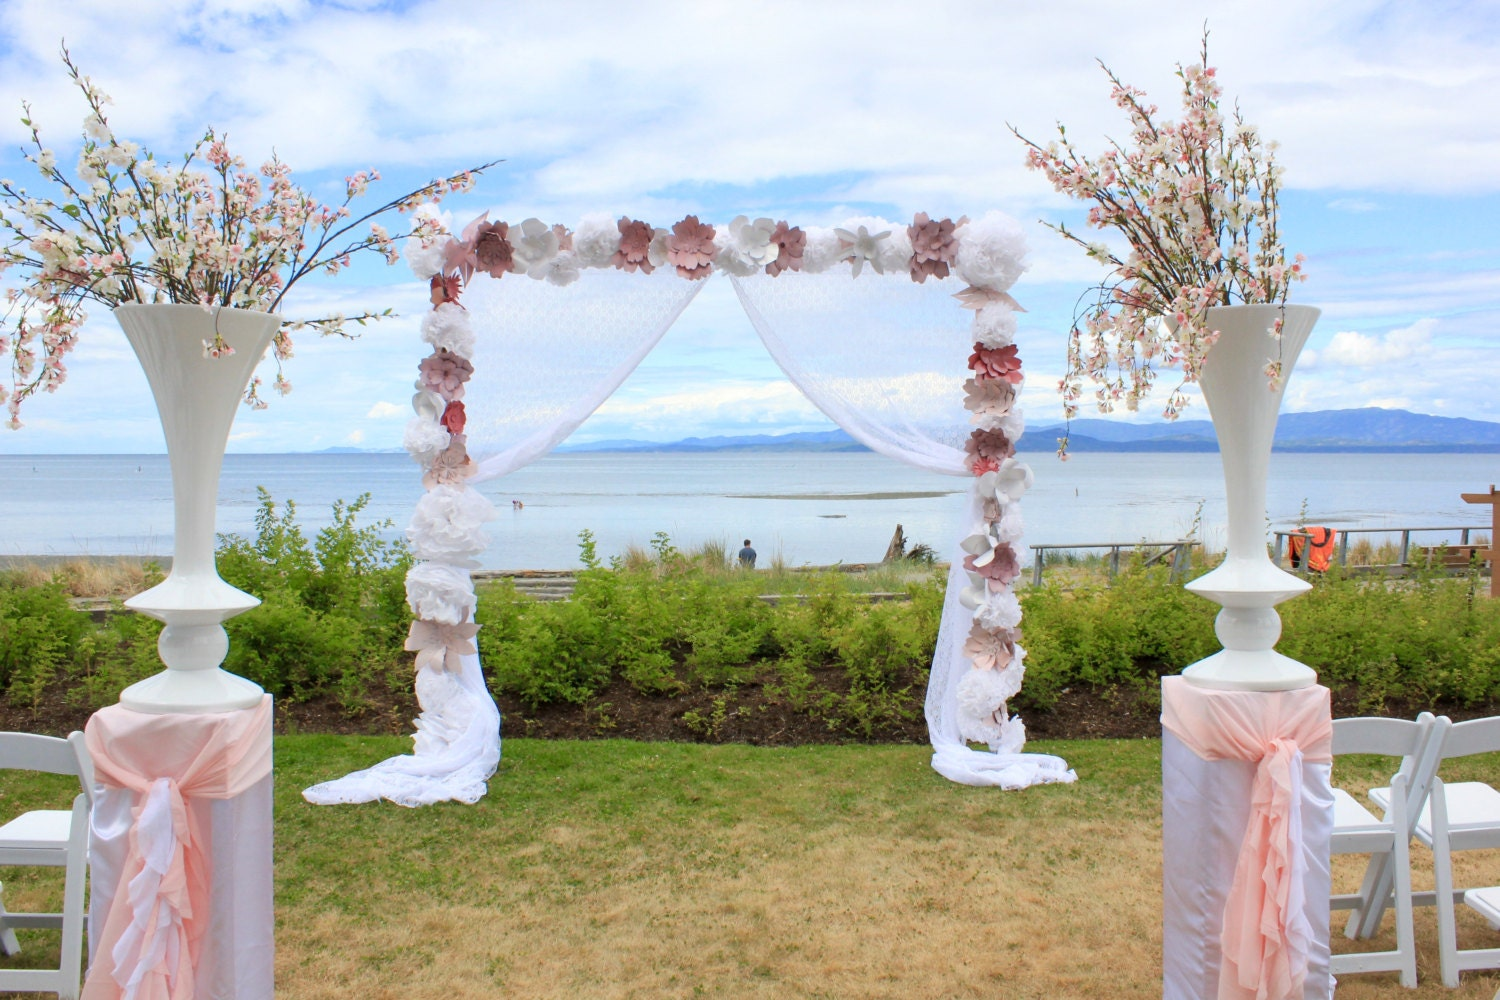 Decorating A Trellis For A Wedding Paper Flower Backdrop Wedding Arch Birthday Party Large